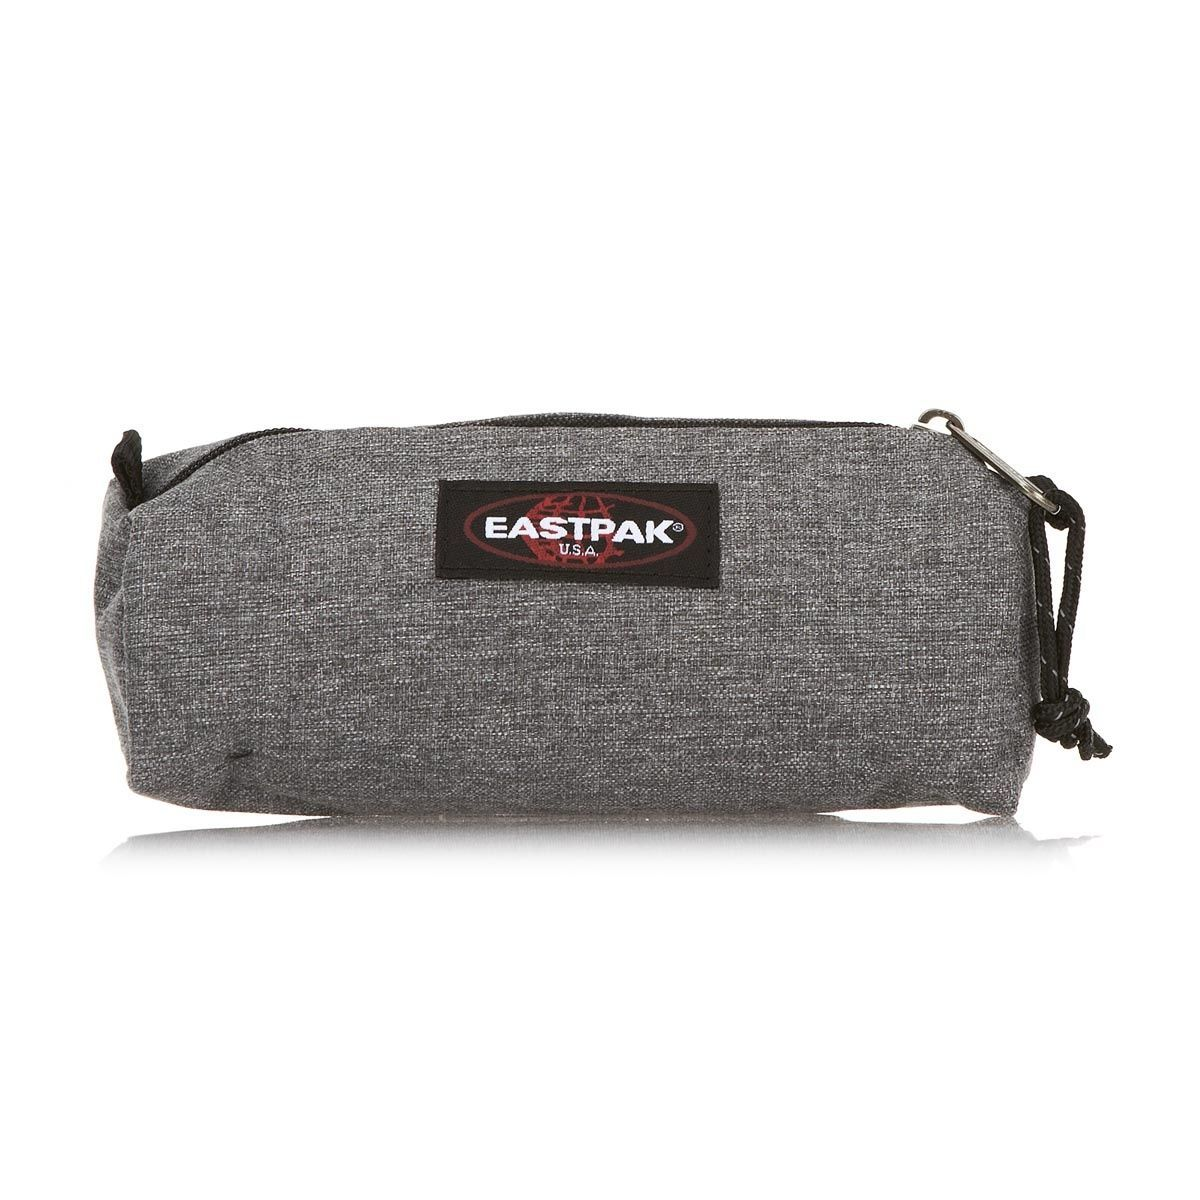 f66507242c Eastpak Pencil Cases - Eastpak Benchmark Pencil Case - Sunday Grey